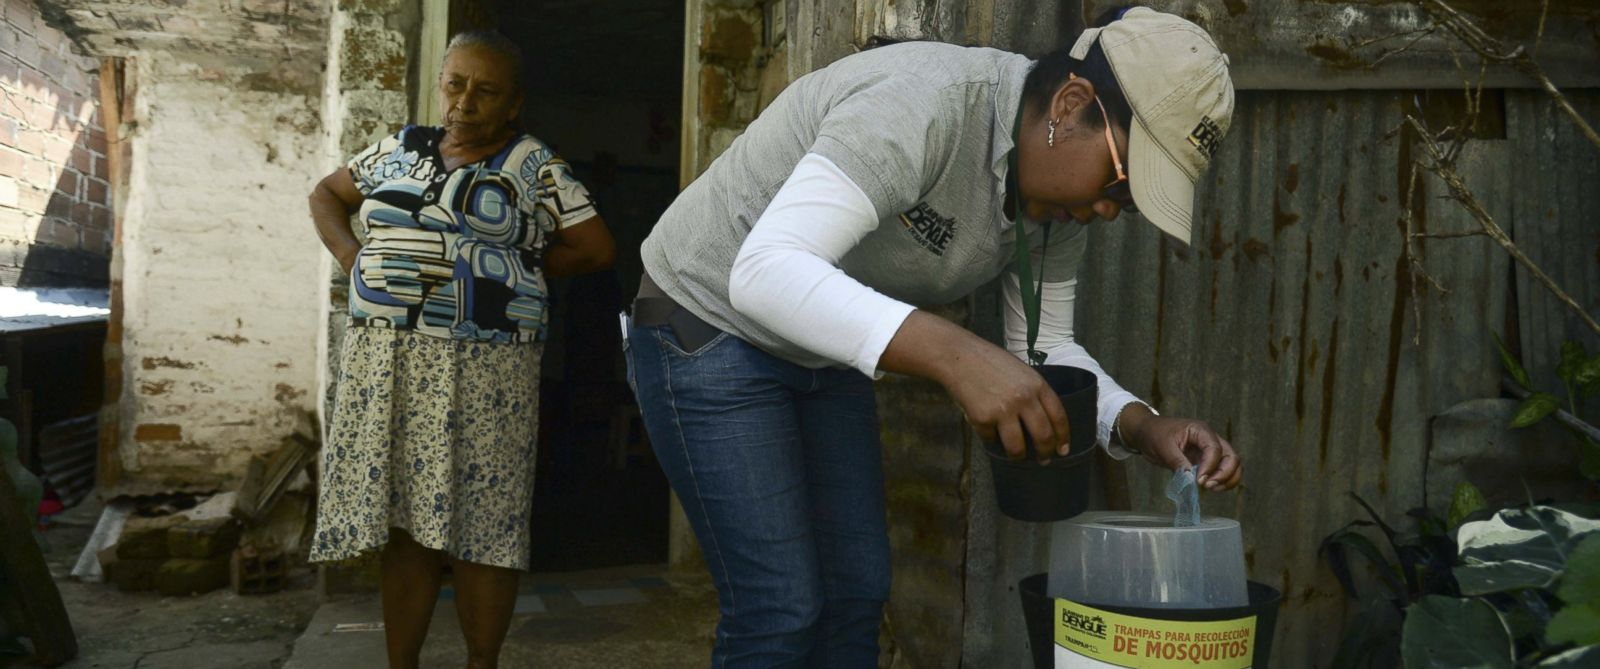 PHOTO: A researcher checks mosquito traps in the Paris neighborhood, Bello municipality, Antioquia department, Colombia on Jan. 26, 2016.